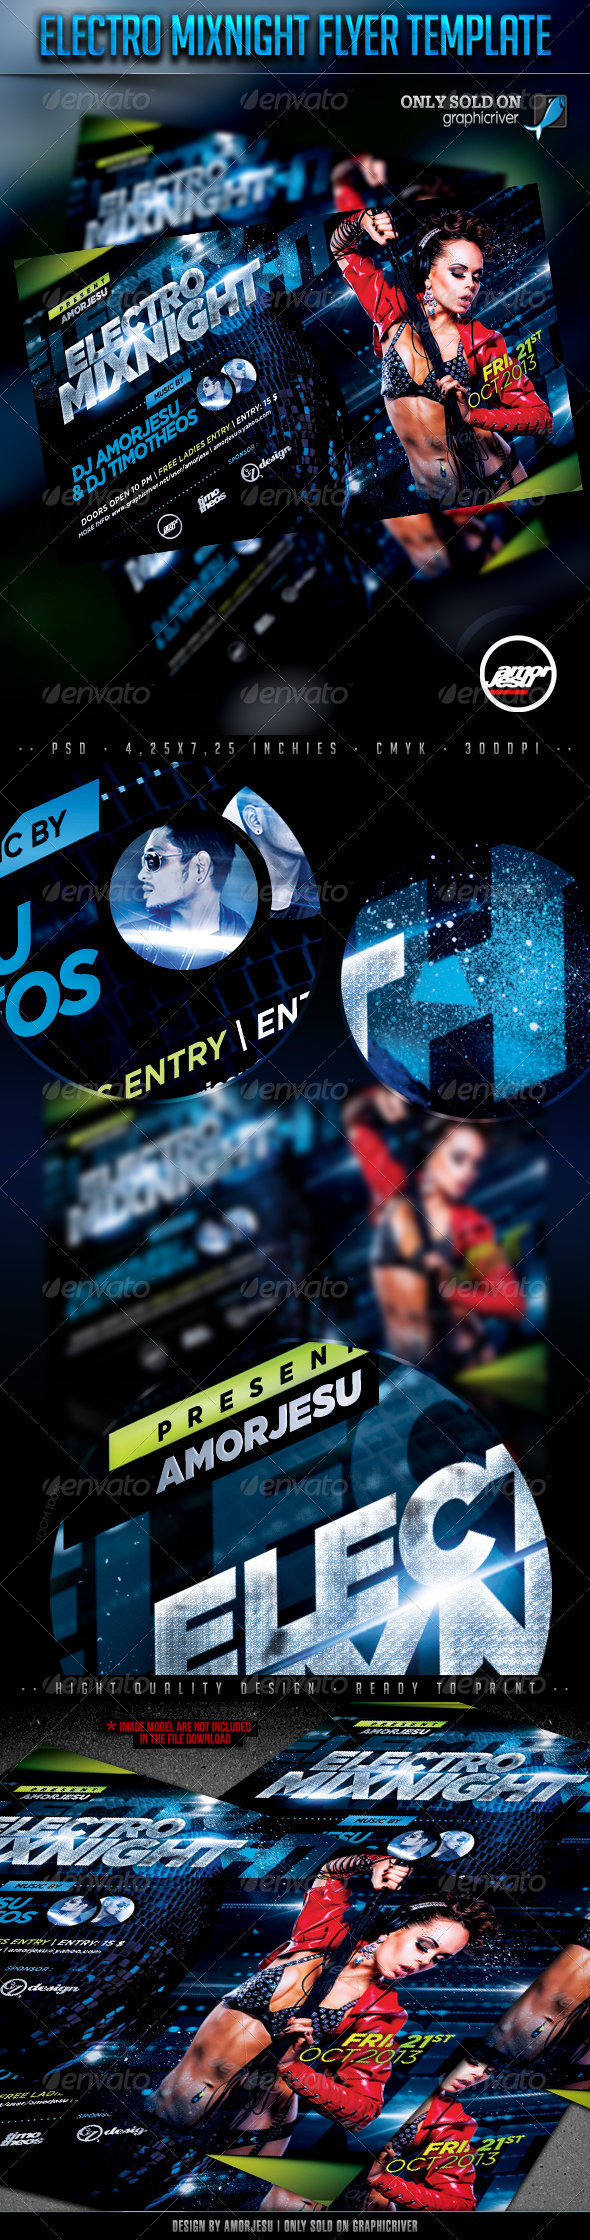 Electro Mixnight Flyer Template - Clubs & Parties Events